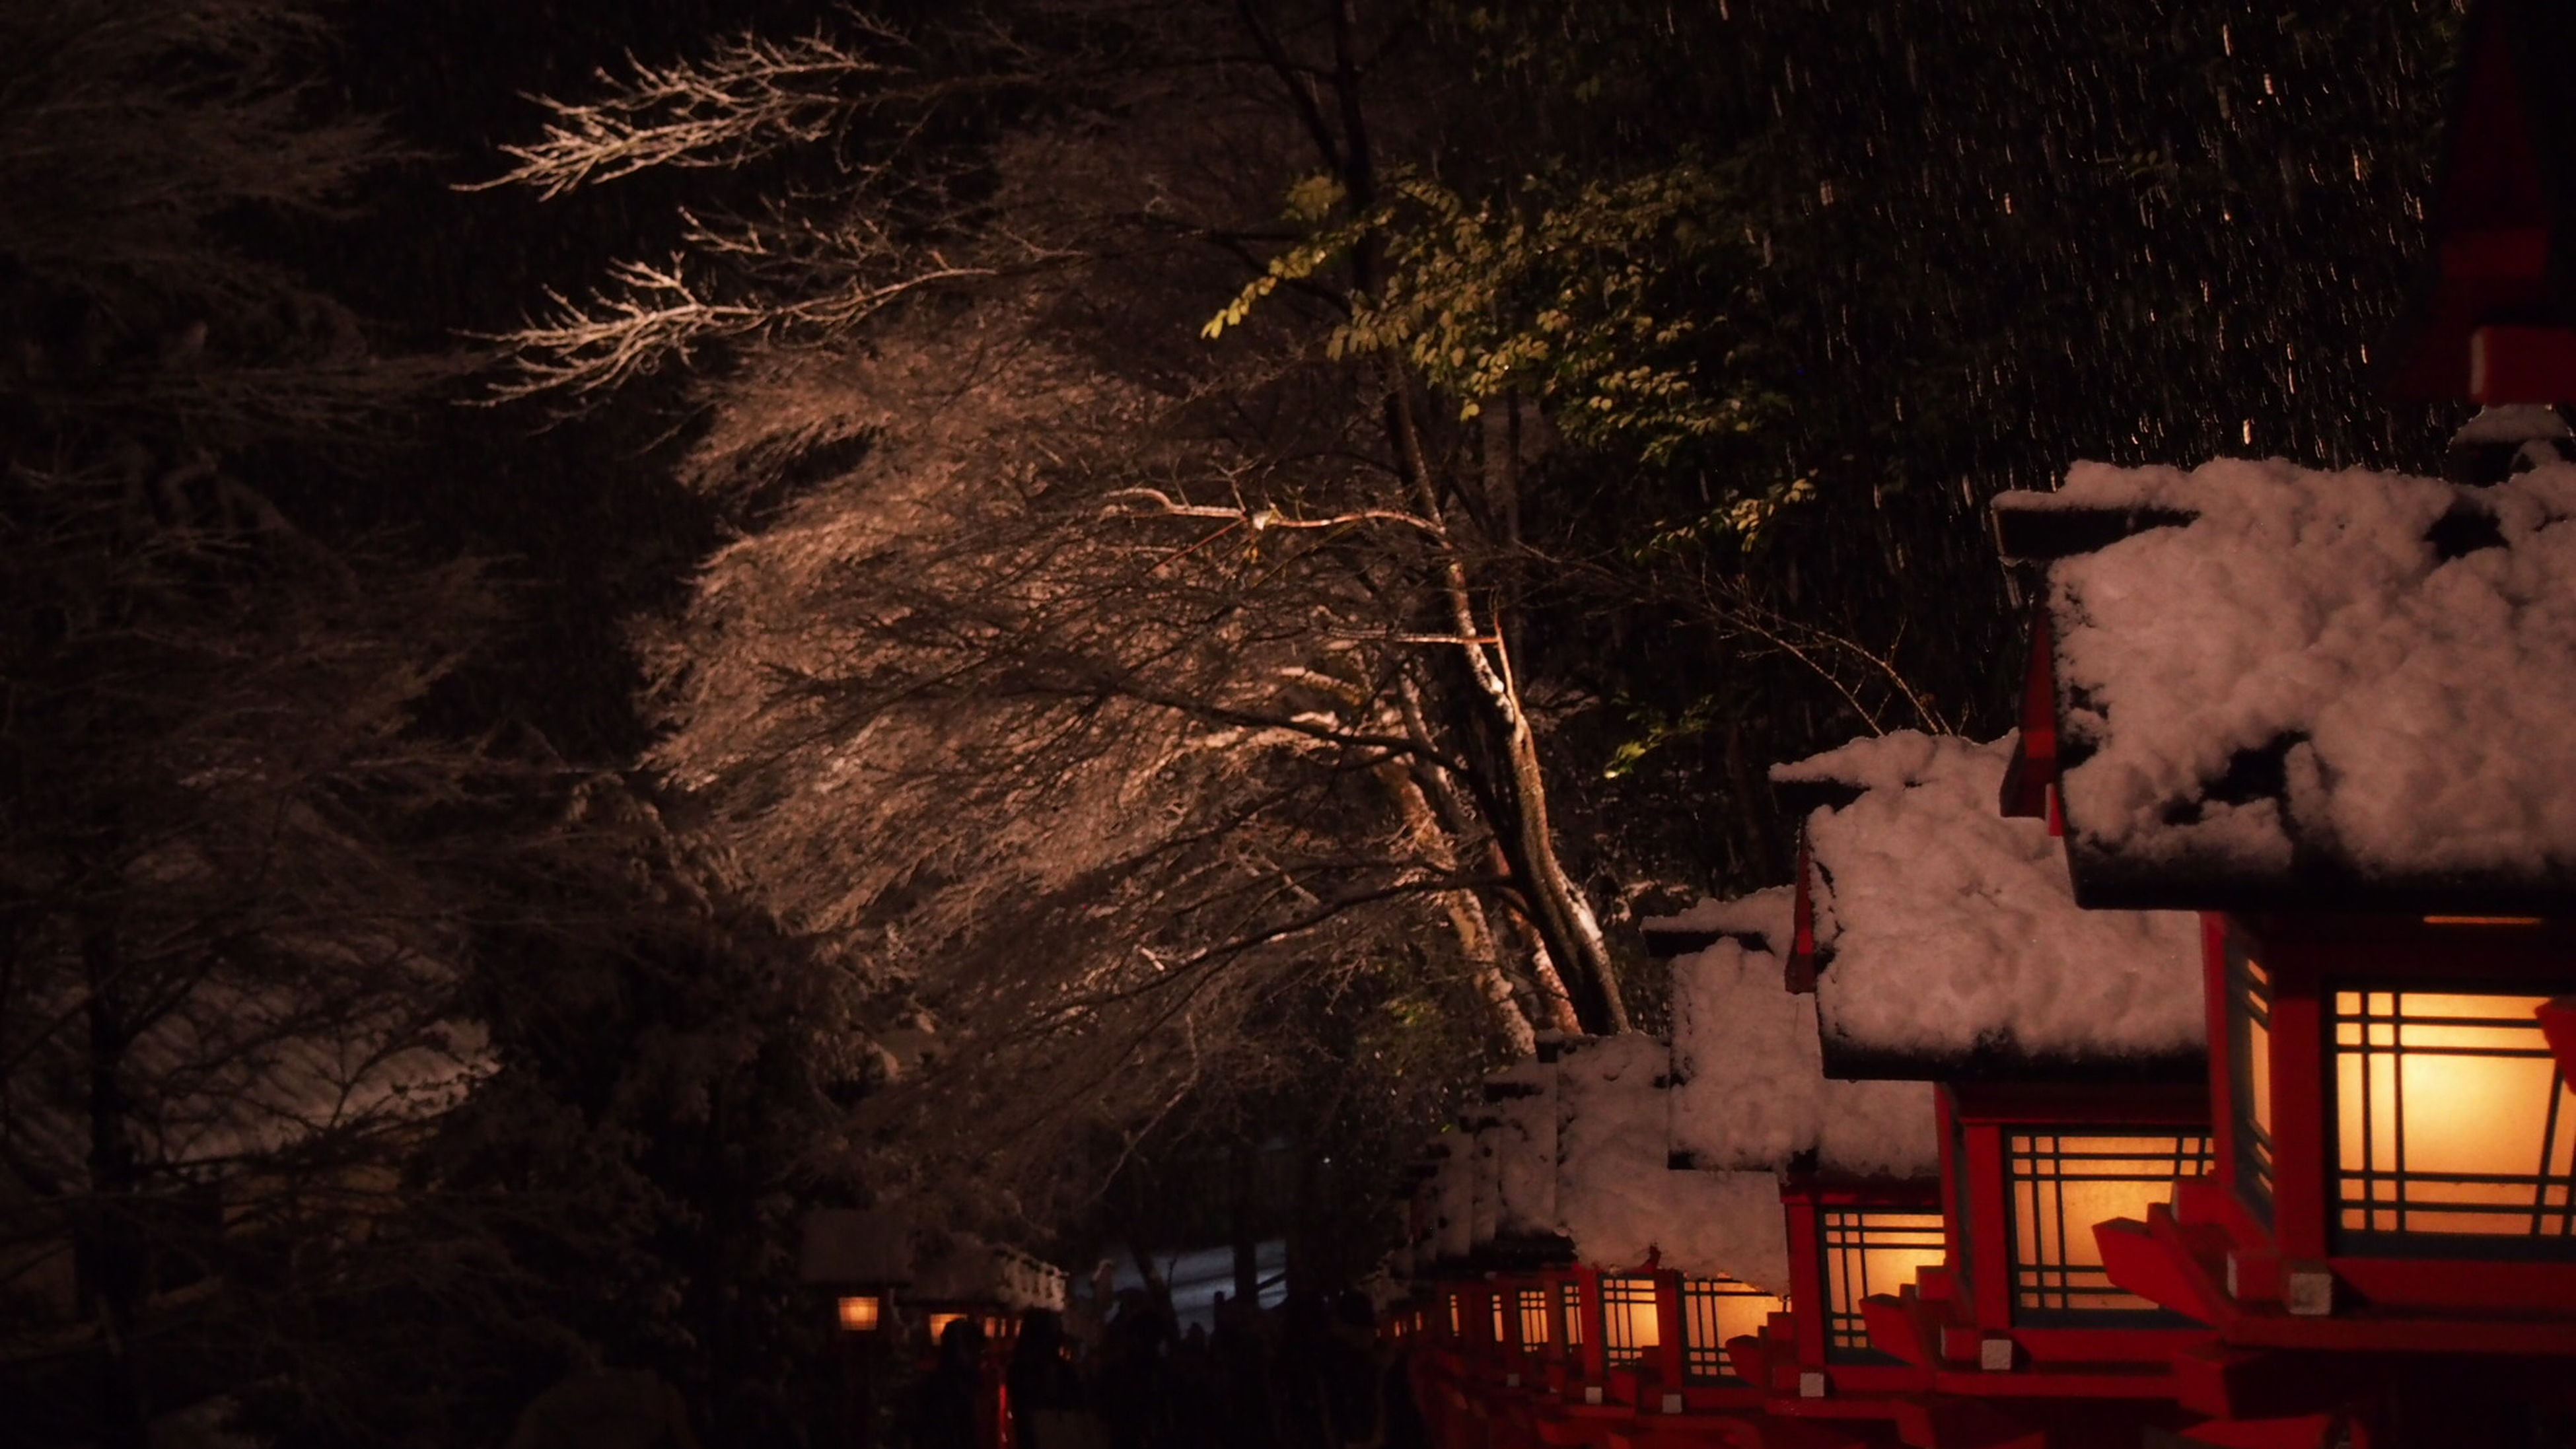 night, illuminated, tree, built structure, building exterior, architecture, house, outdoors, no people, nature, dark, high angle view, dusk, growth, auto post production filter, abandoned, branch, old, wall - building feature